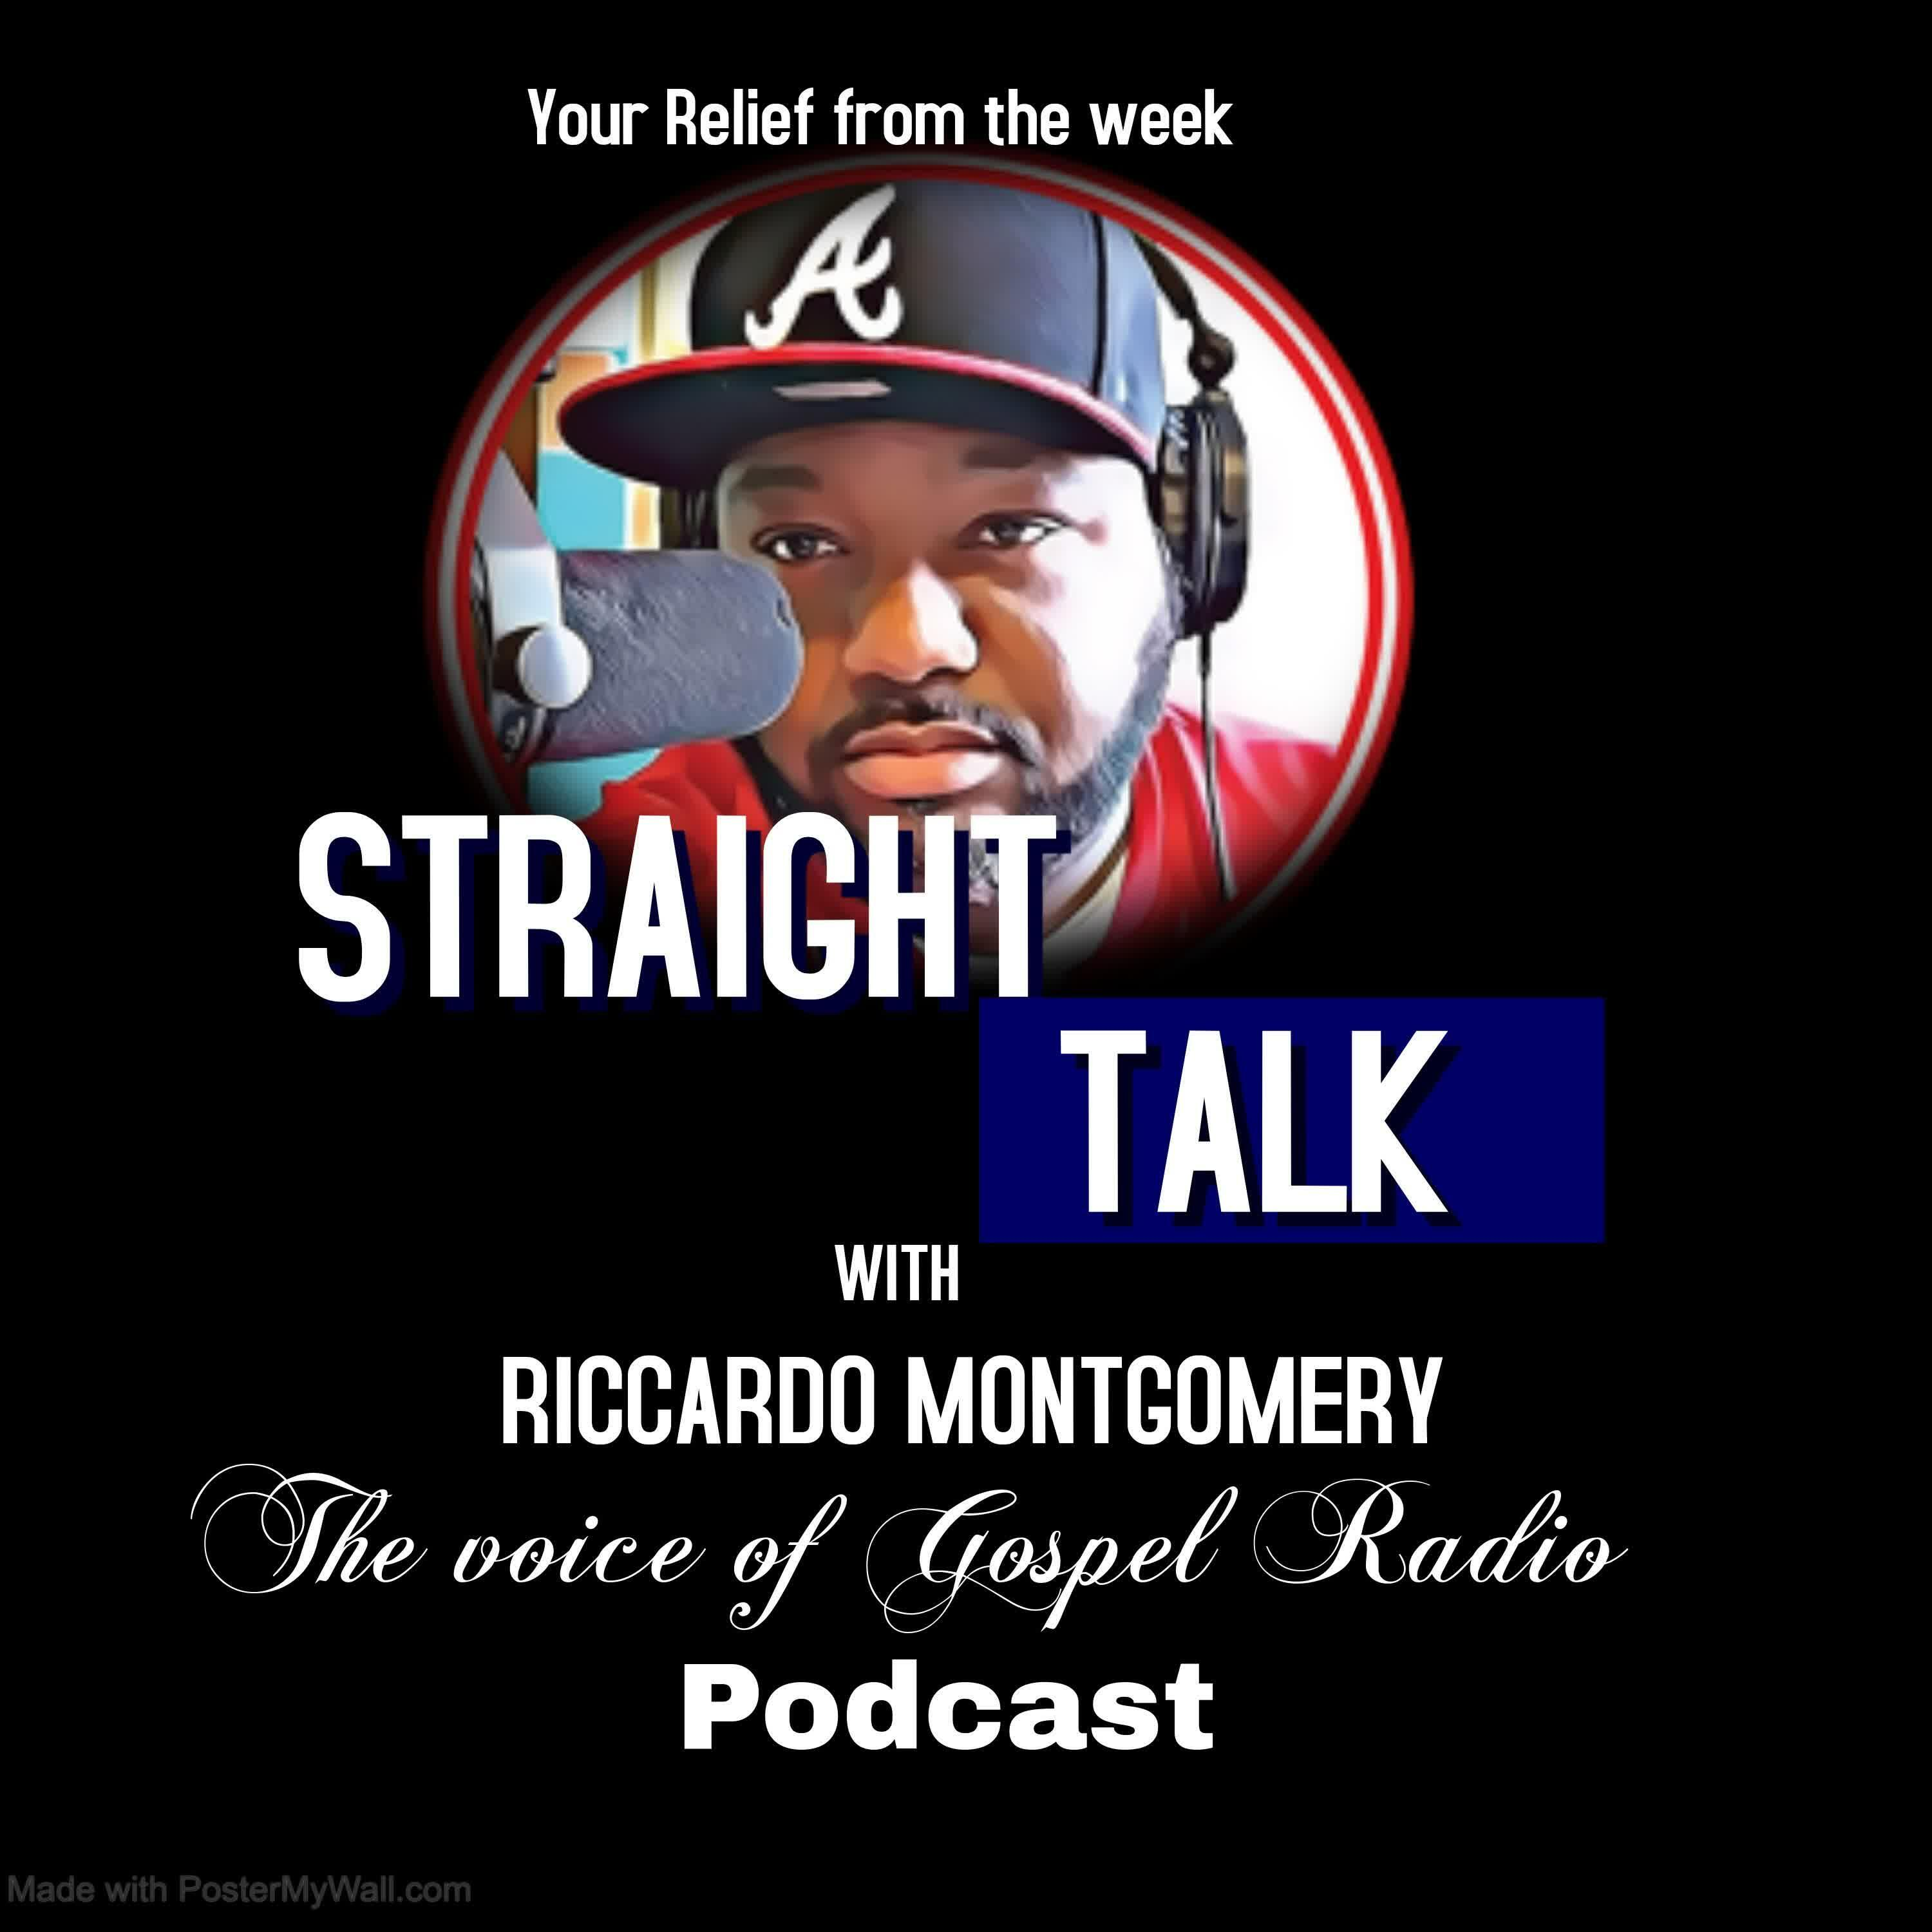 Straight Talk with Riccardo Montgomery